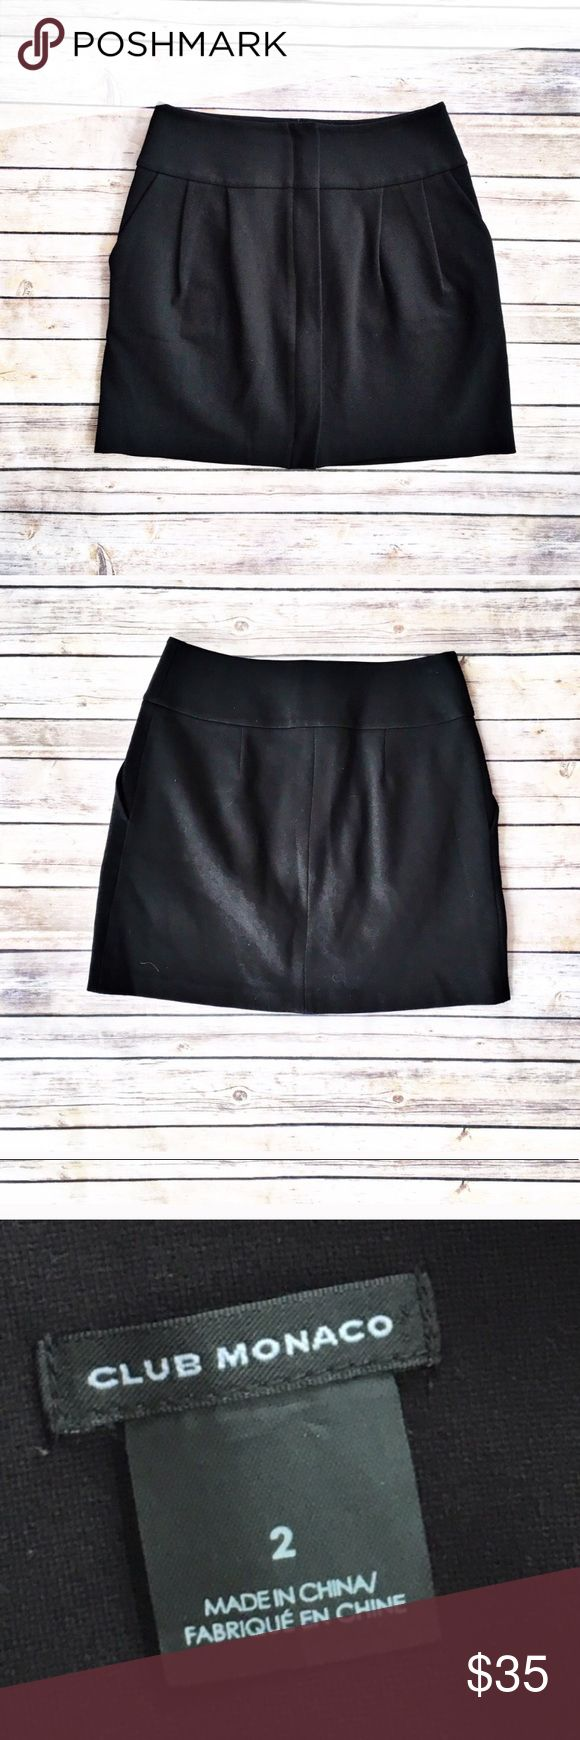 """Club Monaco black ponte skirt Elegant black ponte skirt with pleating and pockets, size 2 from Club Monaco. Fold over flap conceals full front zipper. Excellent condition. Flat measurements are waist 14.5"""", hips 19"""", length 16"""". Club Monaco Skirts Mini"""